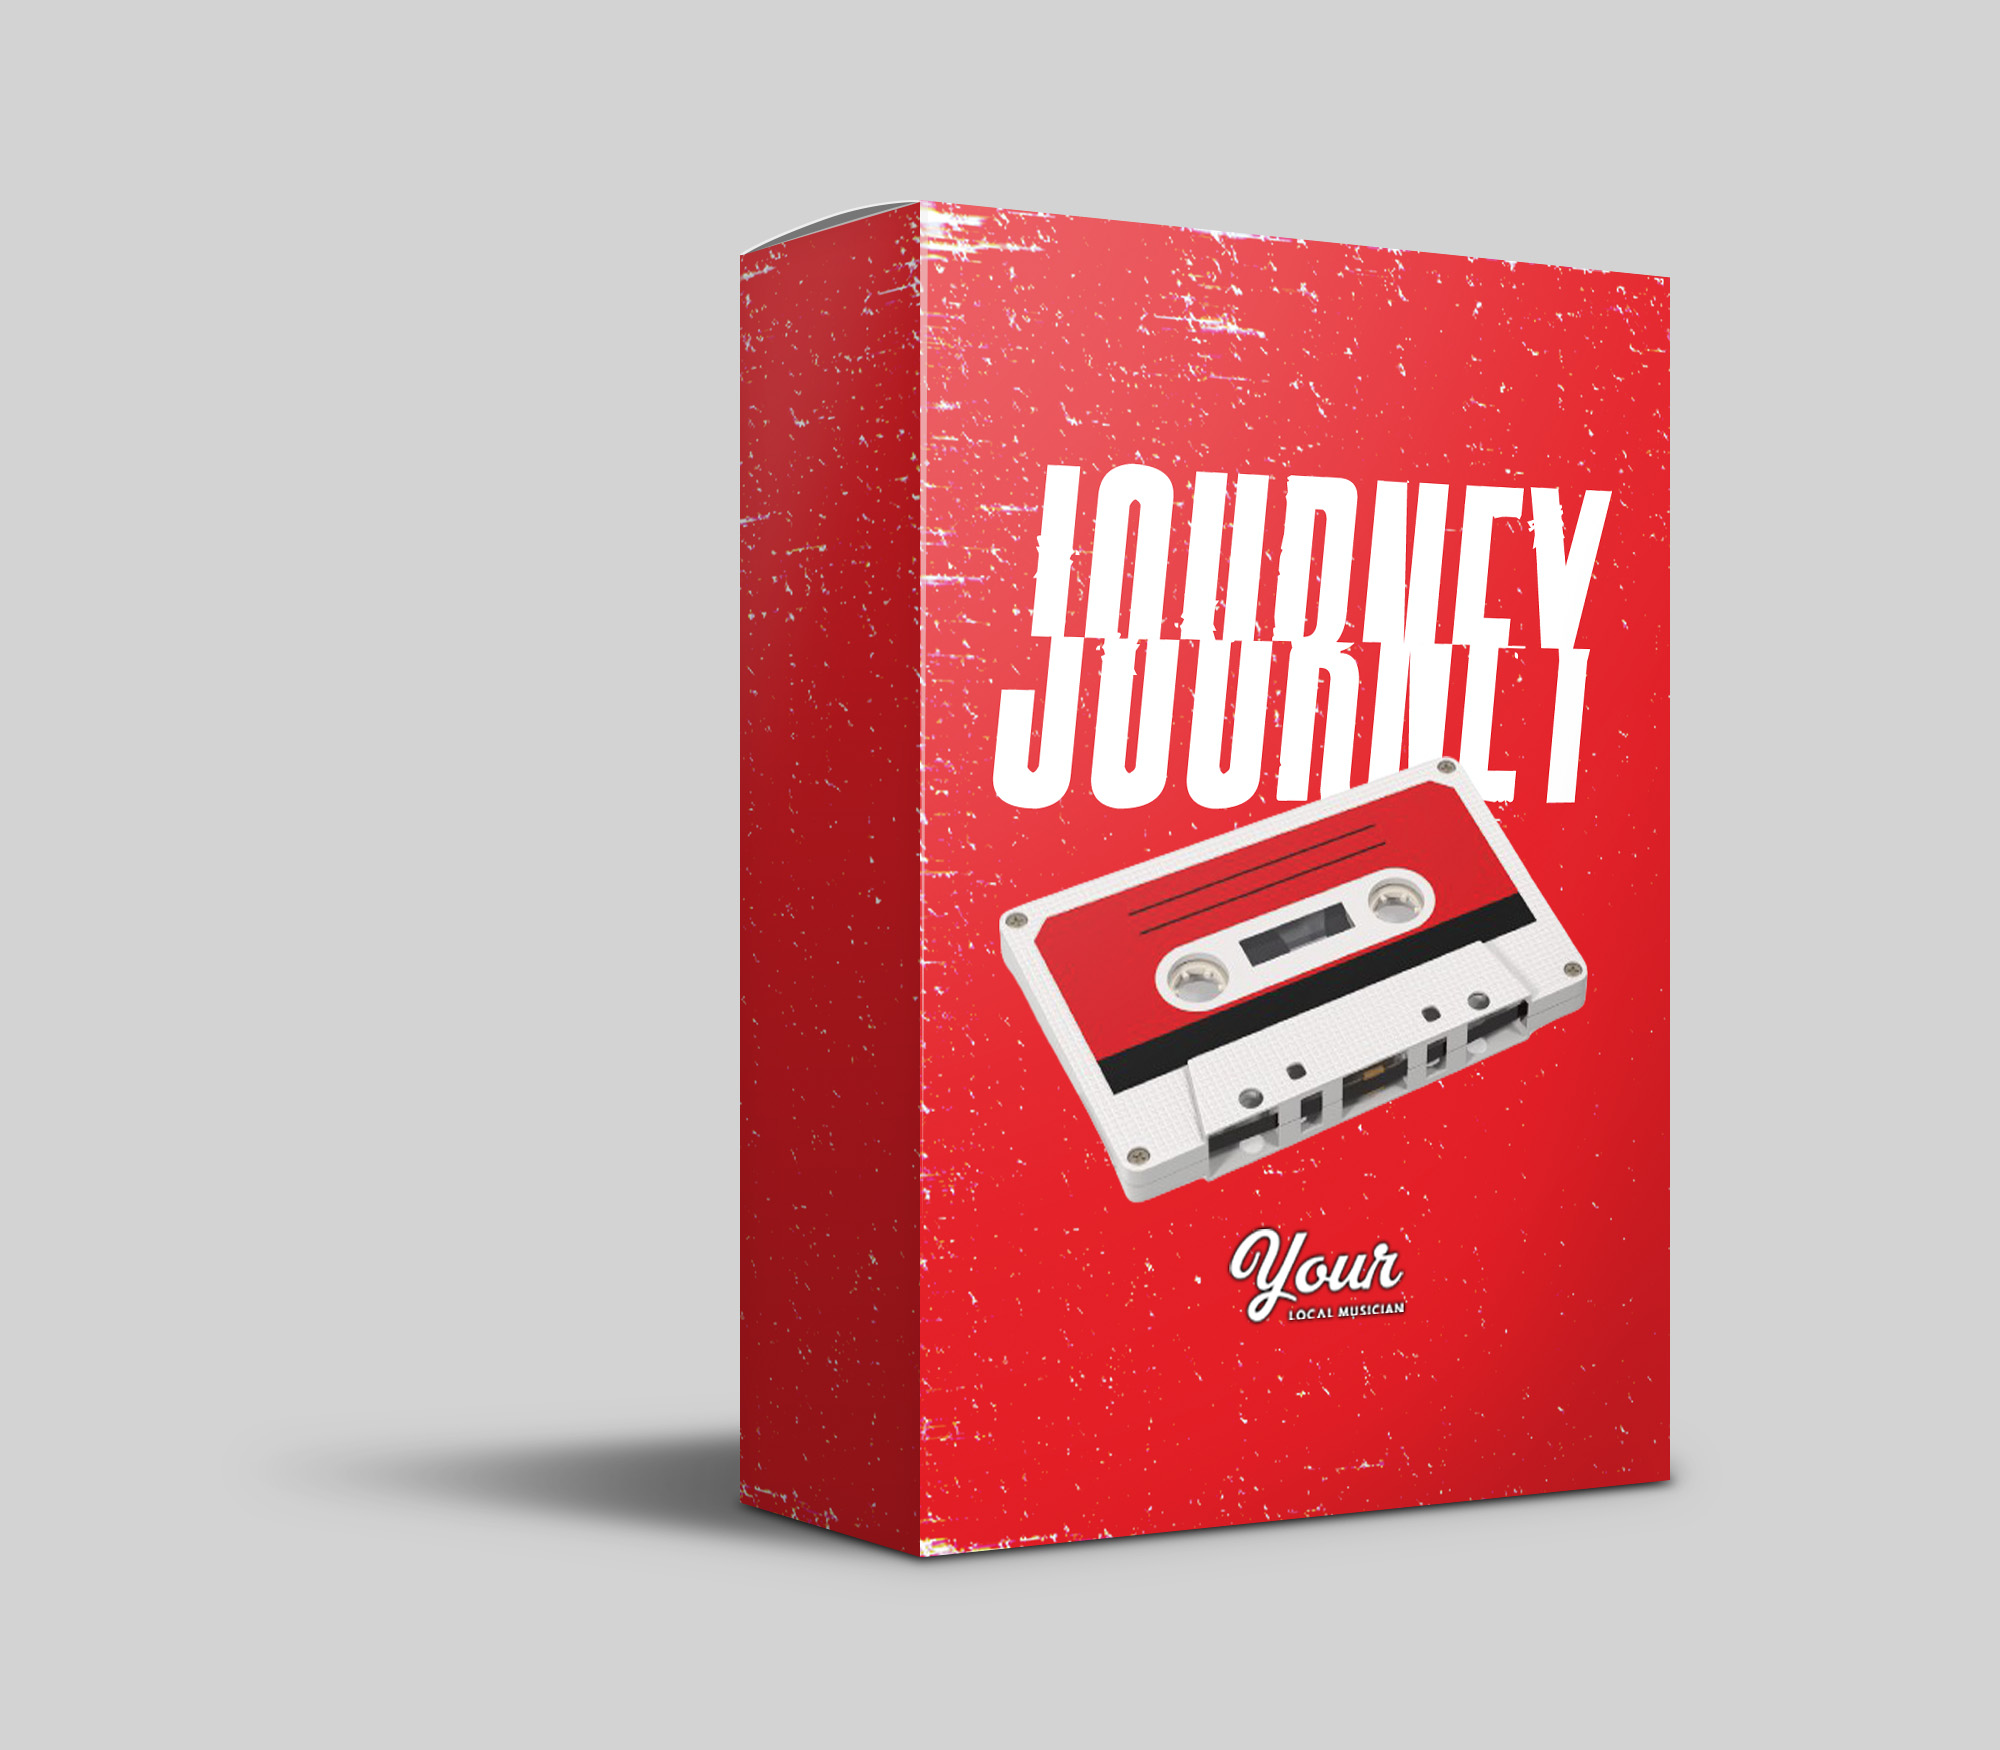 Journey (Chill Guitar Loops)